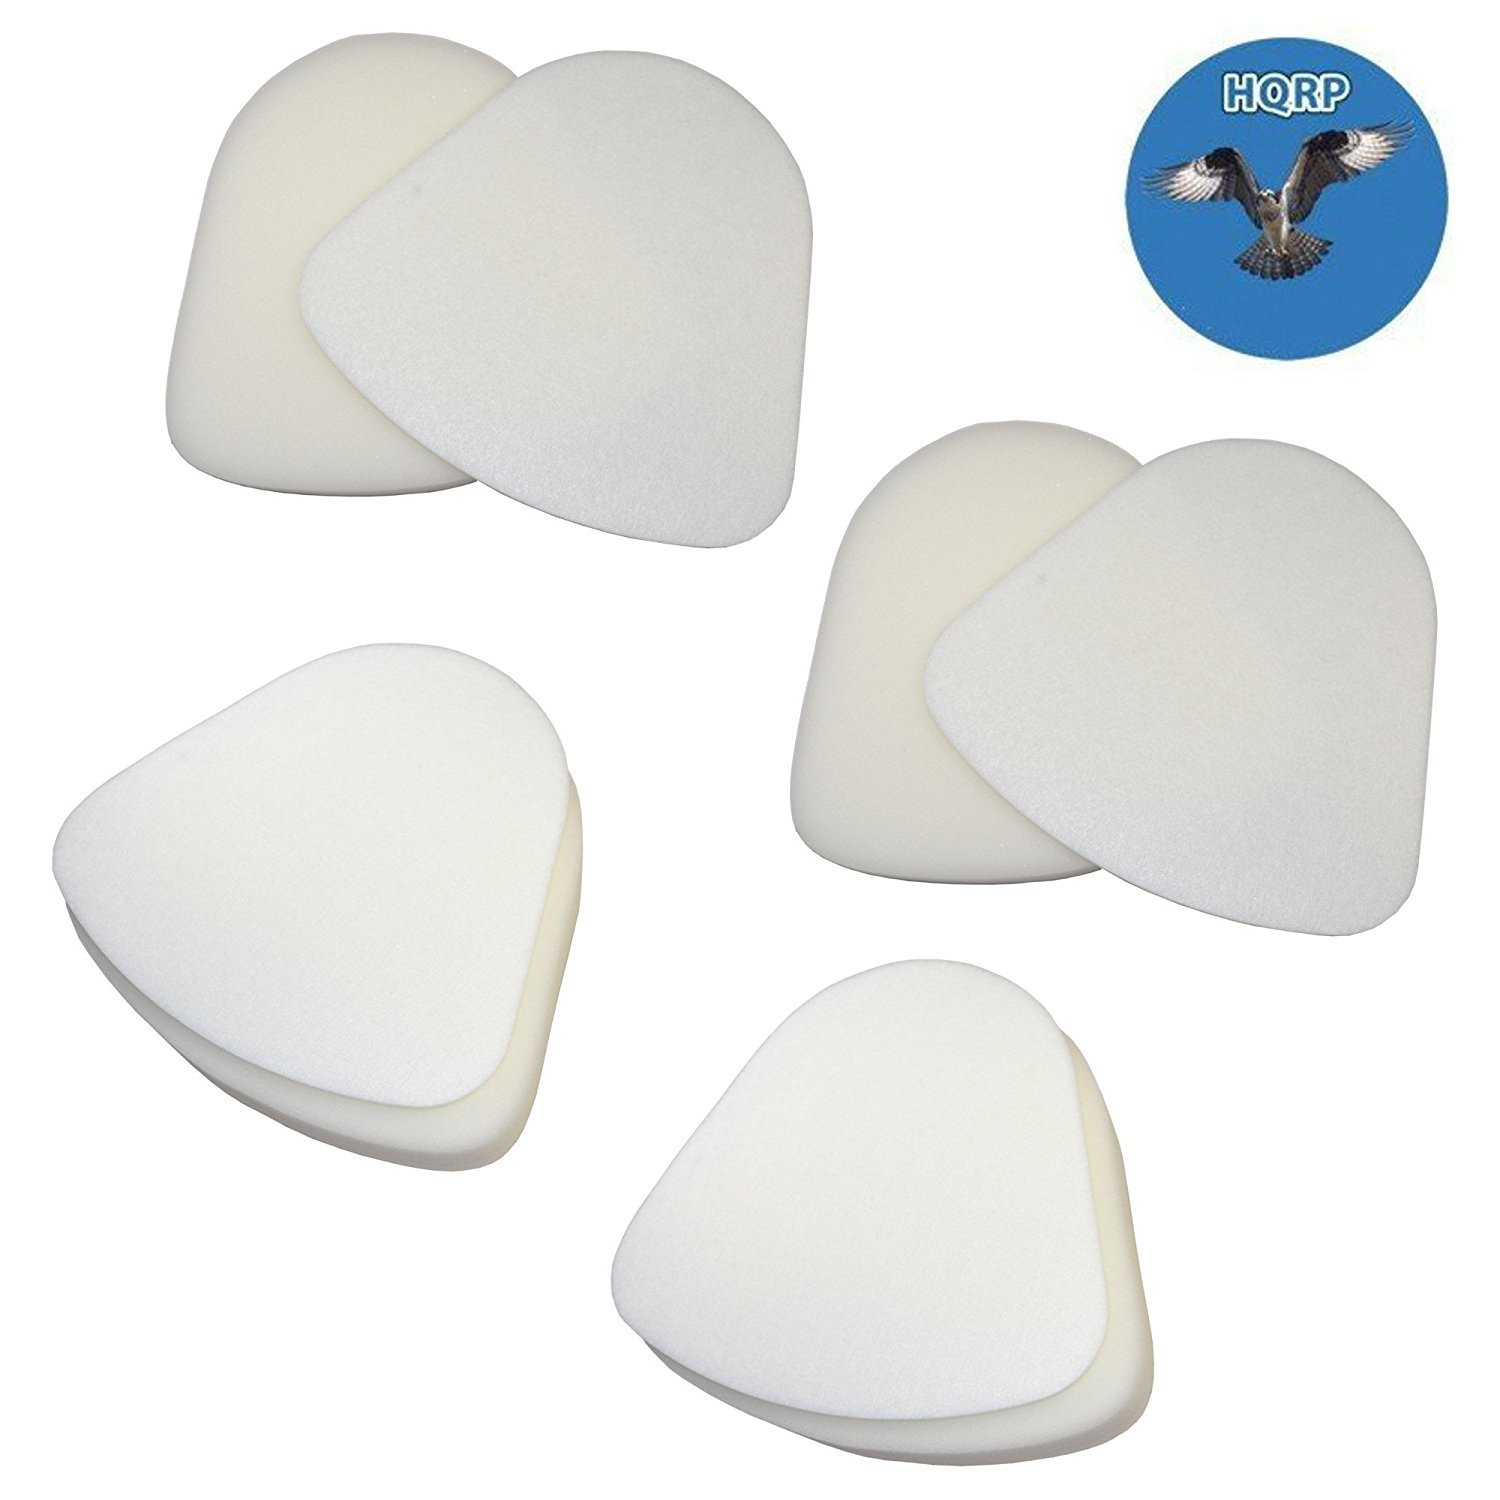 H-88003 Pack of: 1 Hot Water Bottle-heart